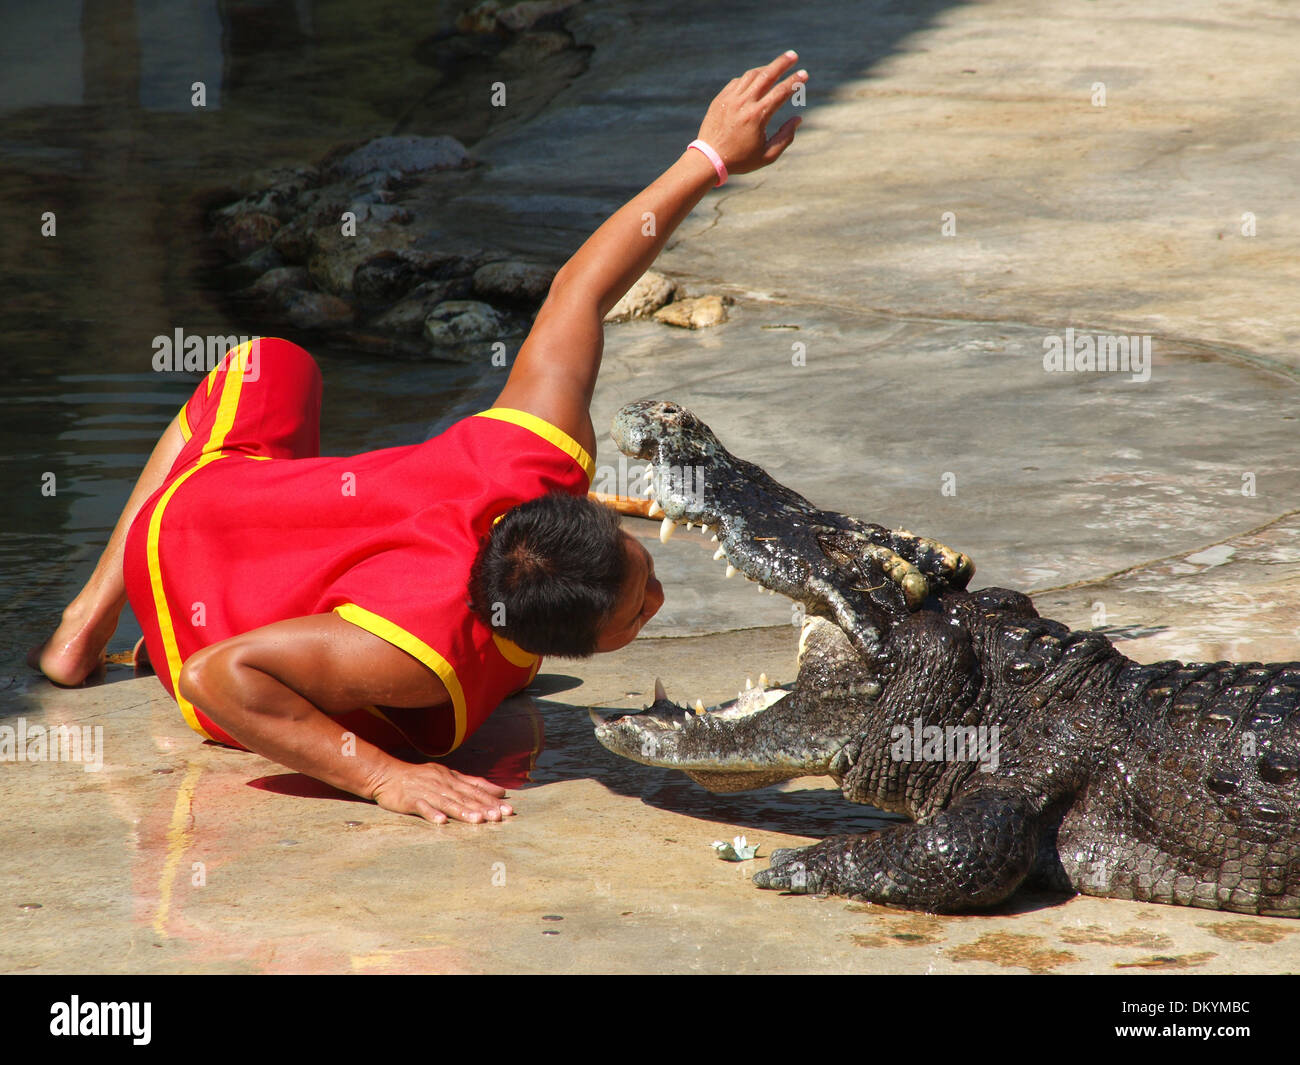 Deadly friendship of a man with a crocodile